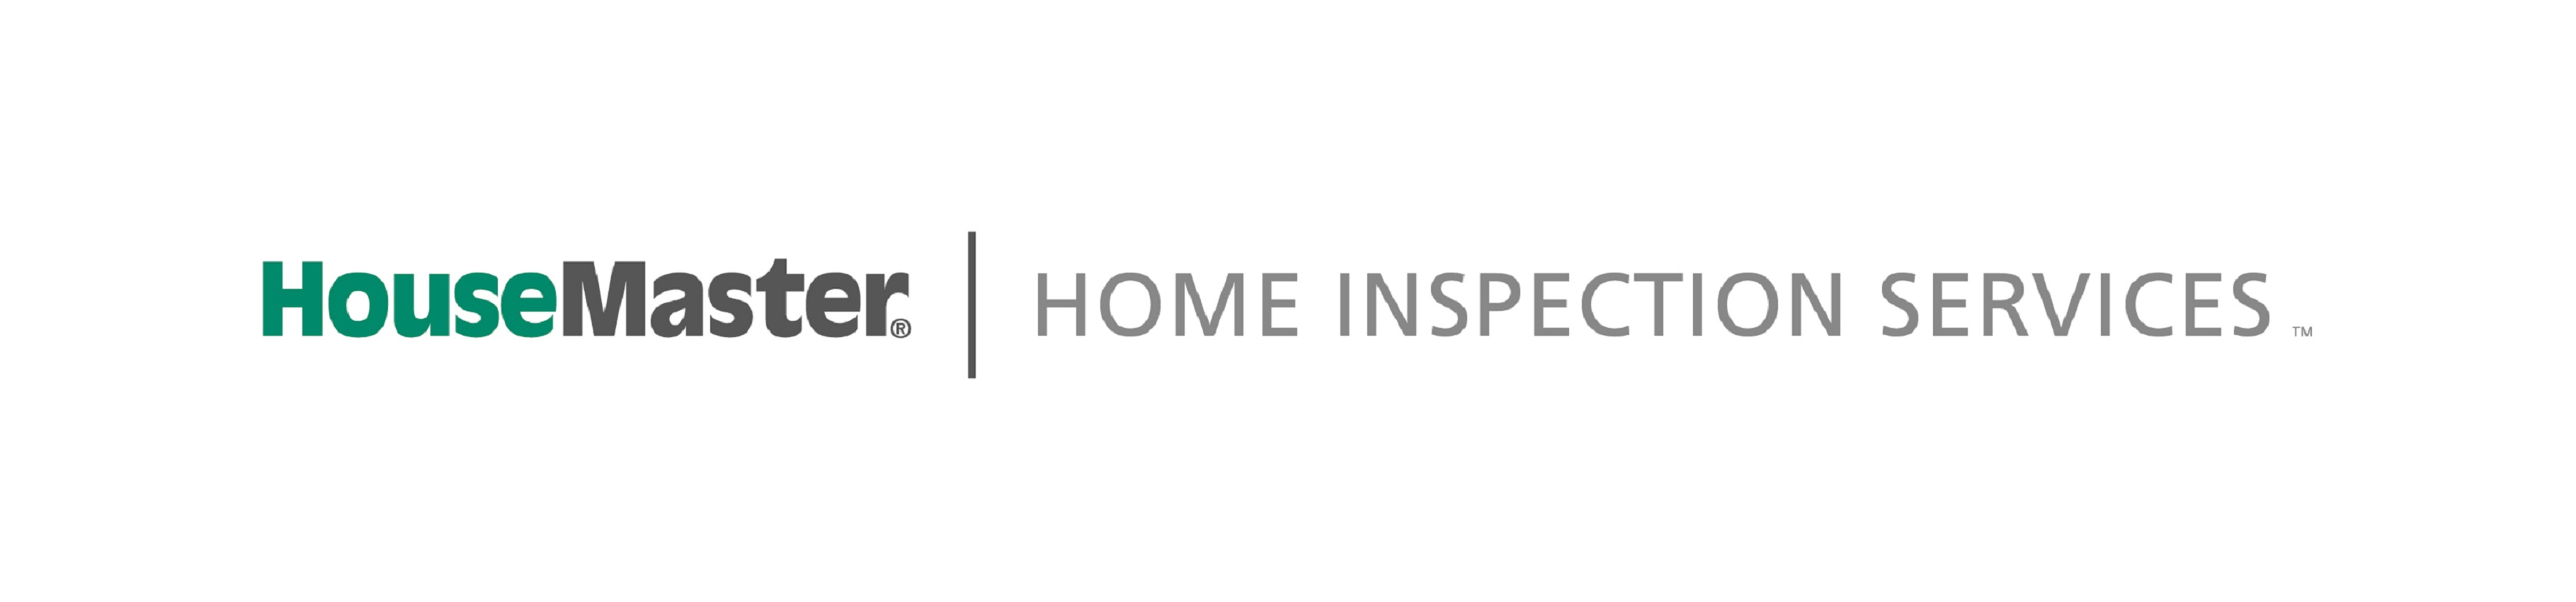 House Master Home Inspection